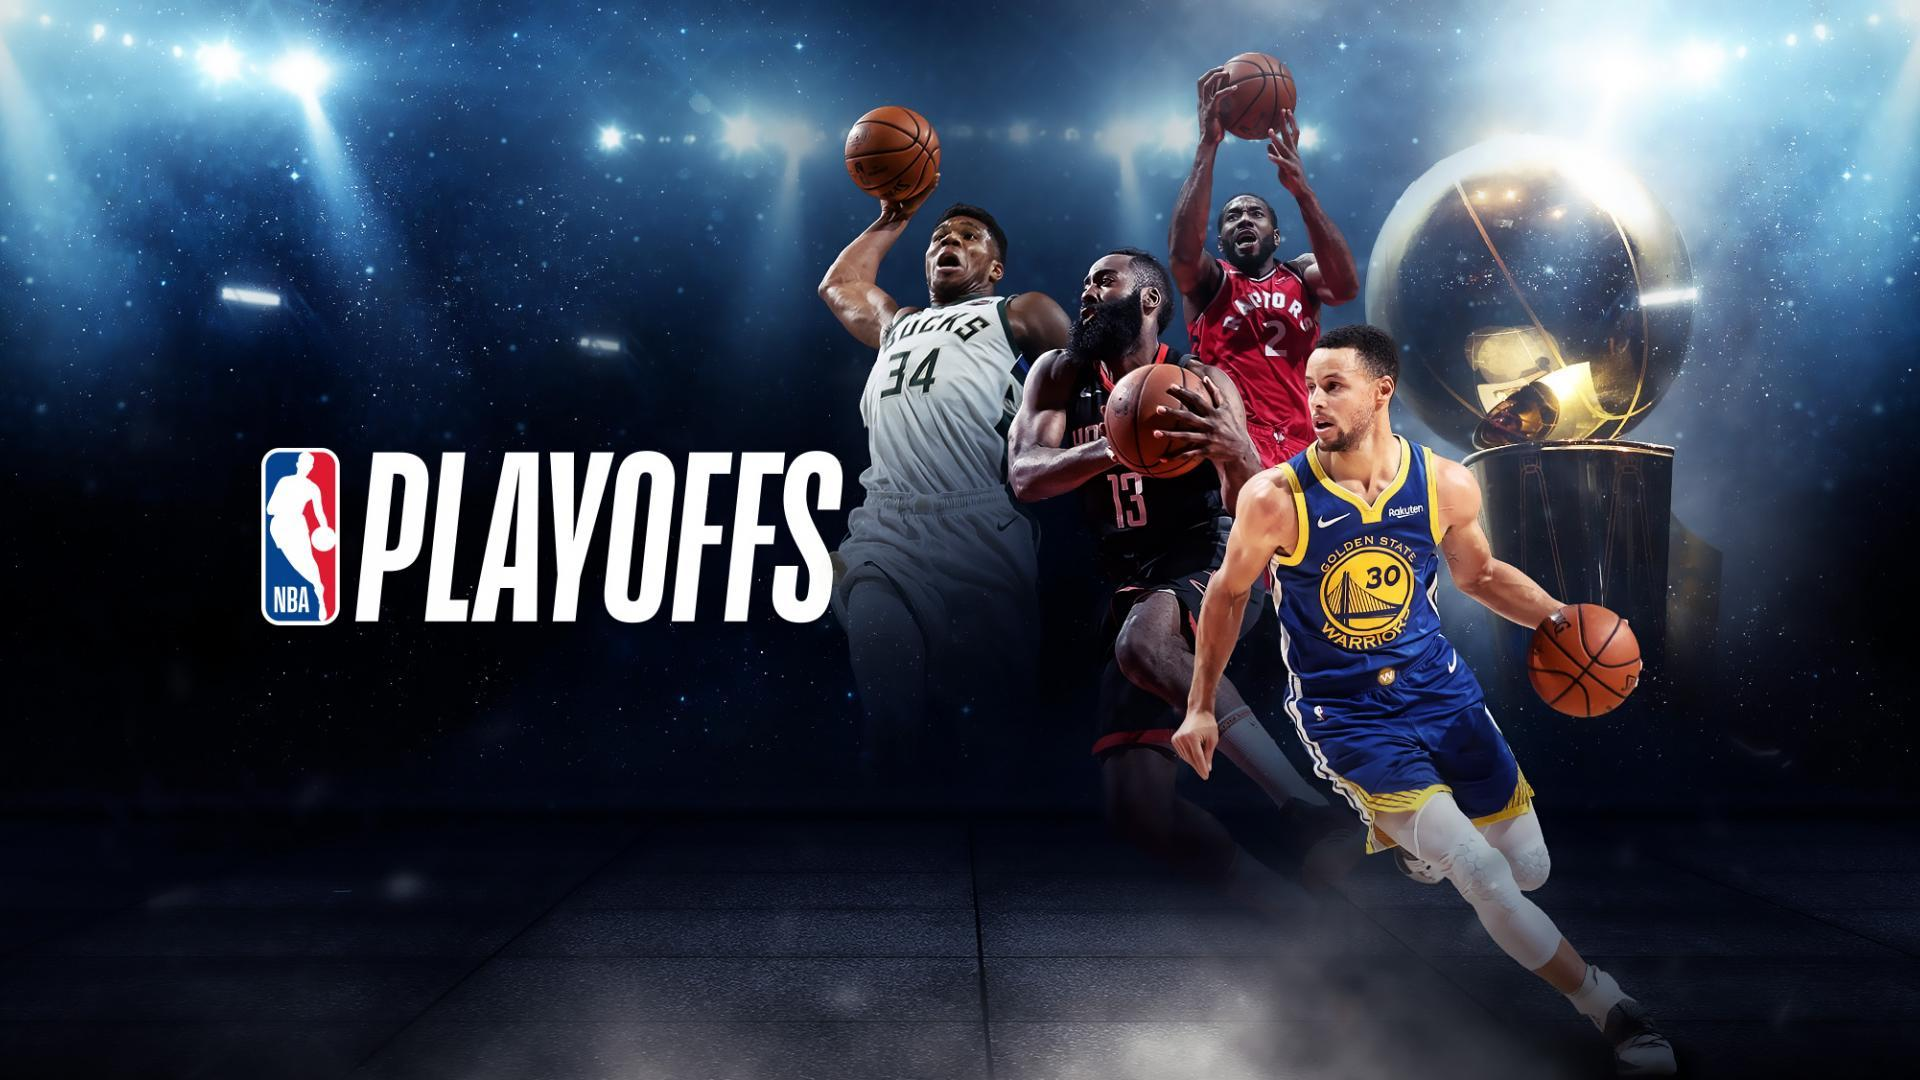 2019 Nba Playoffs Conference Semifinals Schedule And Matchups Nba Com